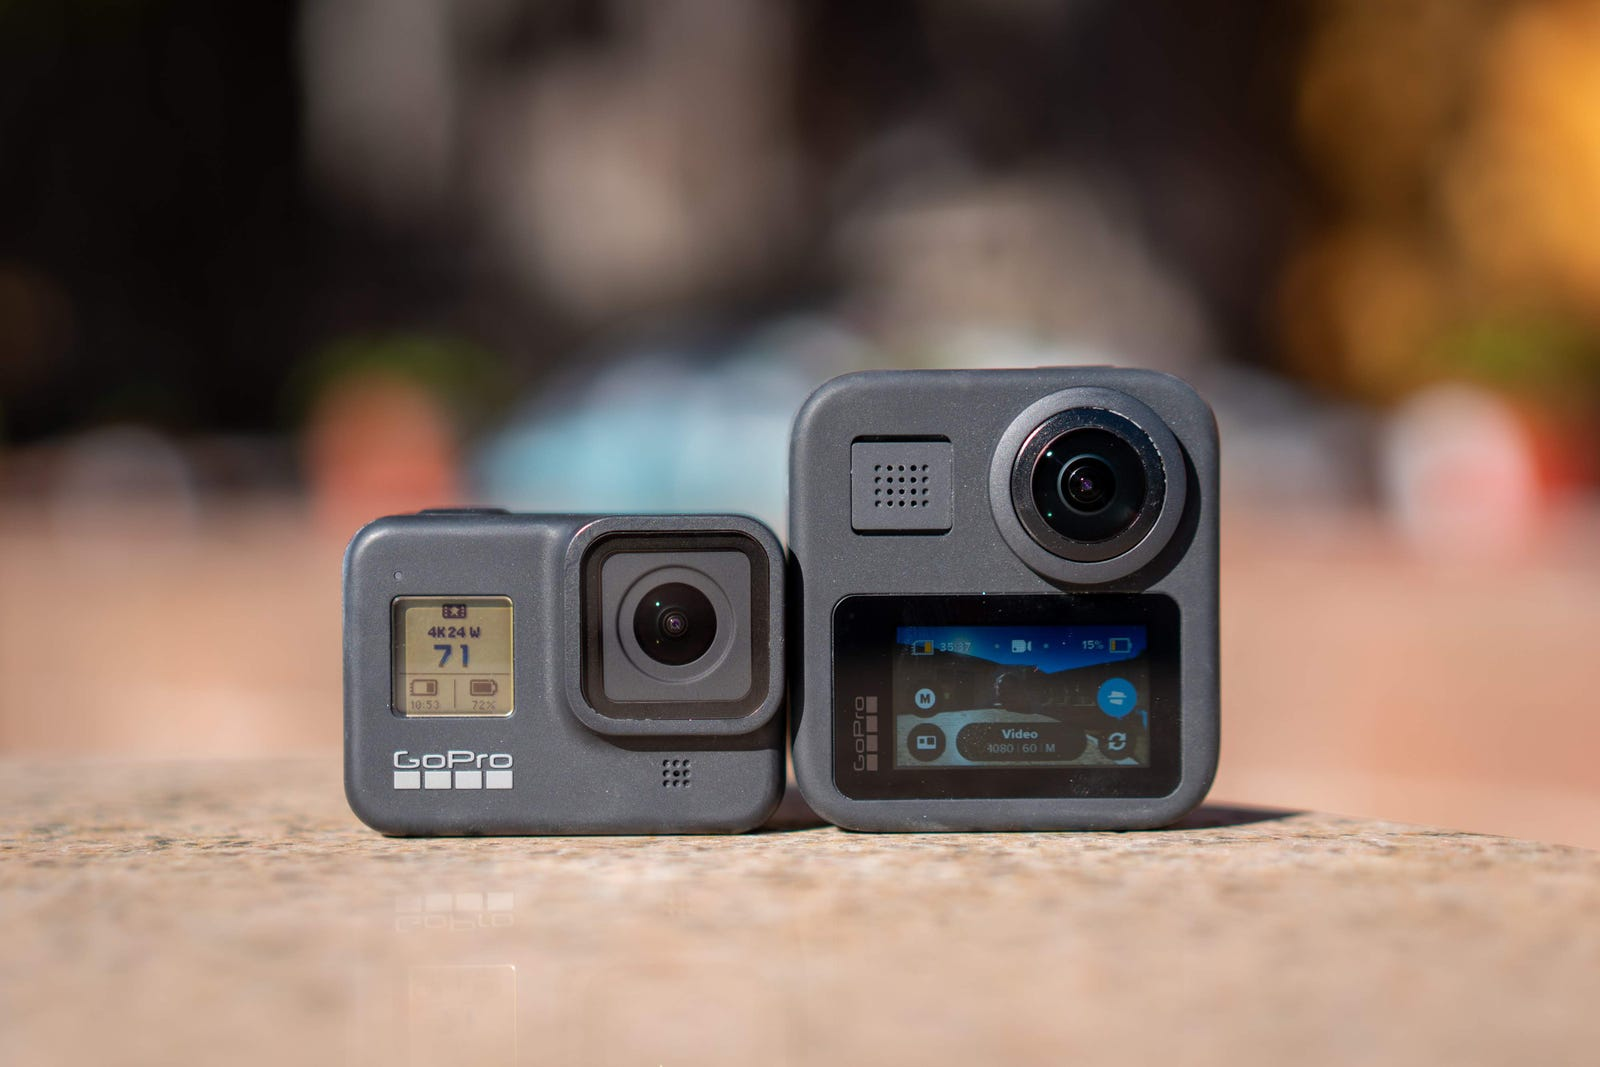 The GoPro Hero 8 Black (left) versus the GoPro Max (right).